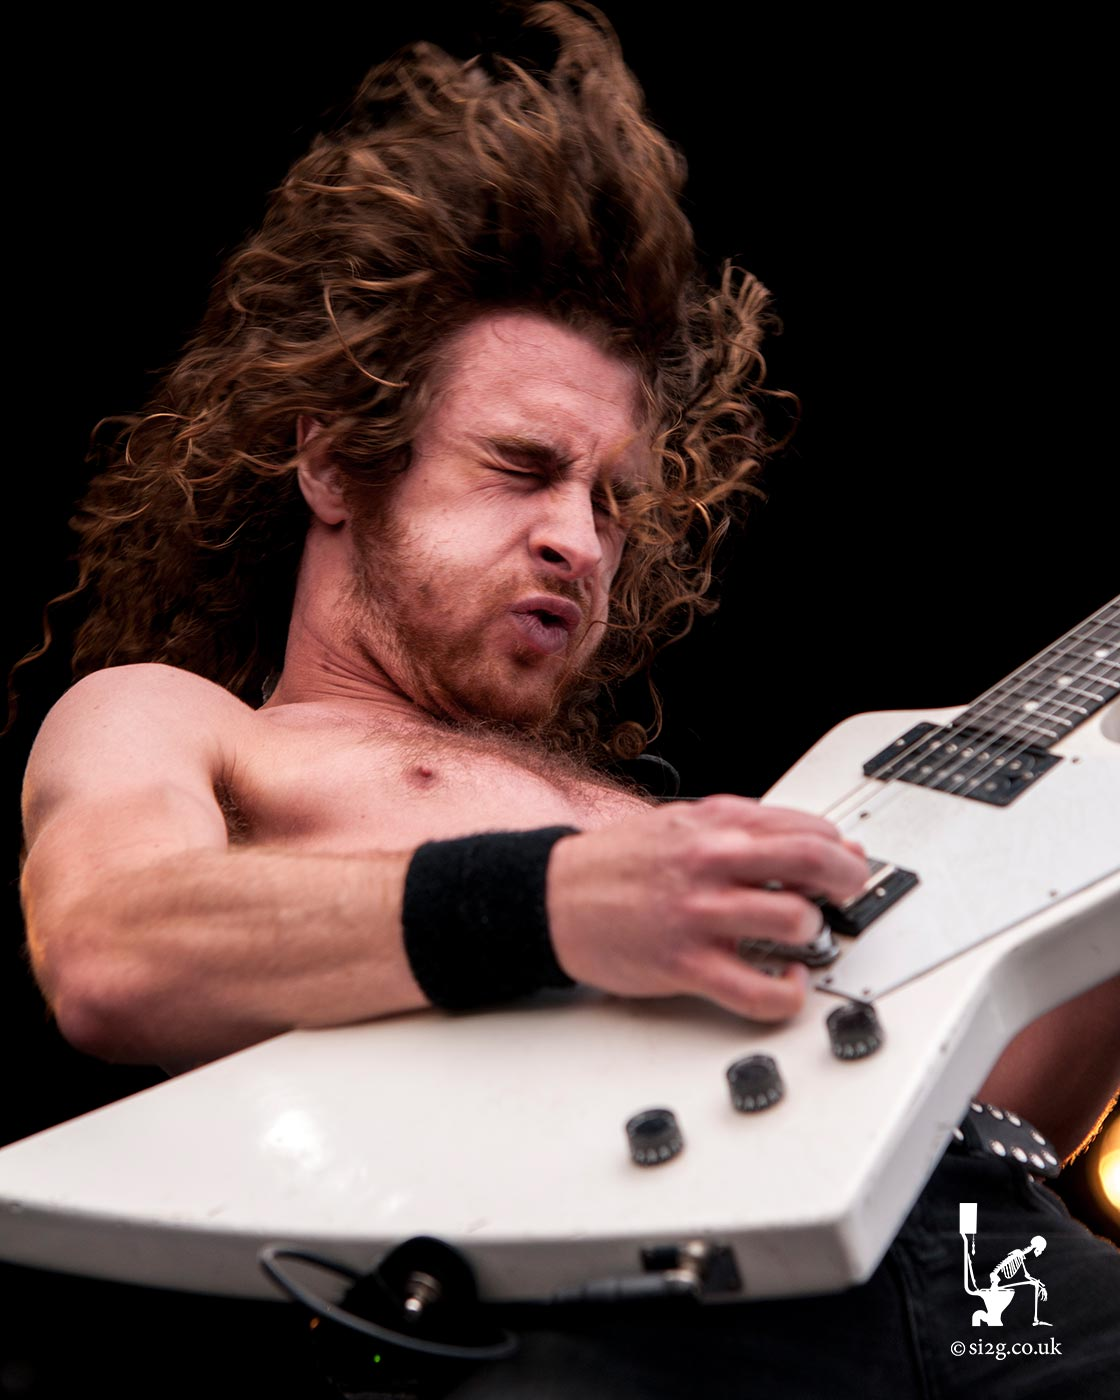 Airbourne - Joel OKeeffe, vocalist and lead guitarist for Australian hard rock band Airbourne, commands the Download Festival to rock to the tune of his white Gibson Explorer guitar.  Hidden between his fingers is the legendary Pick of Destiny, an evil yet powerful guitar plectrum used by all the greatest rock musicians.